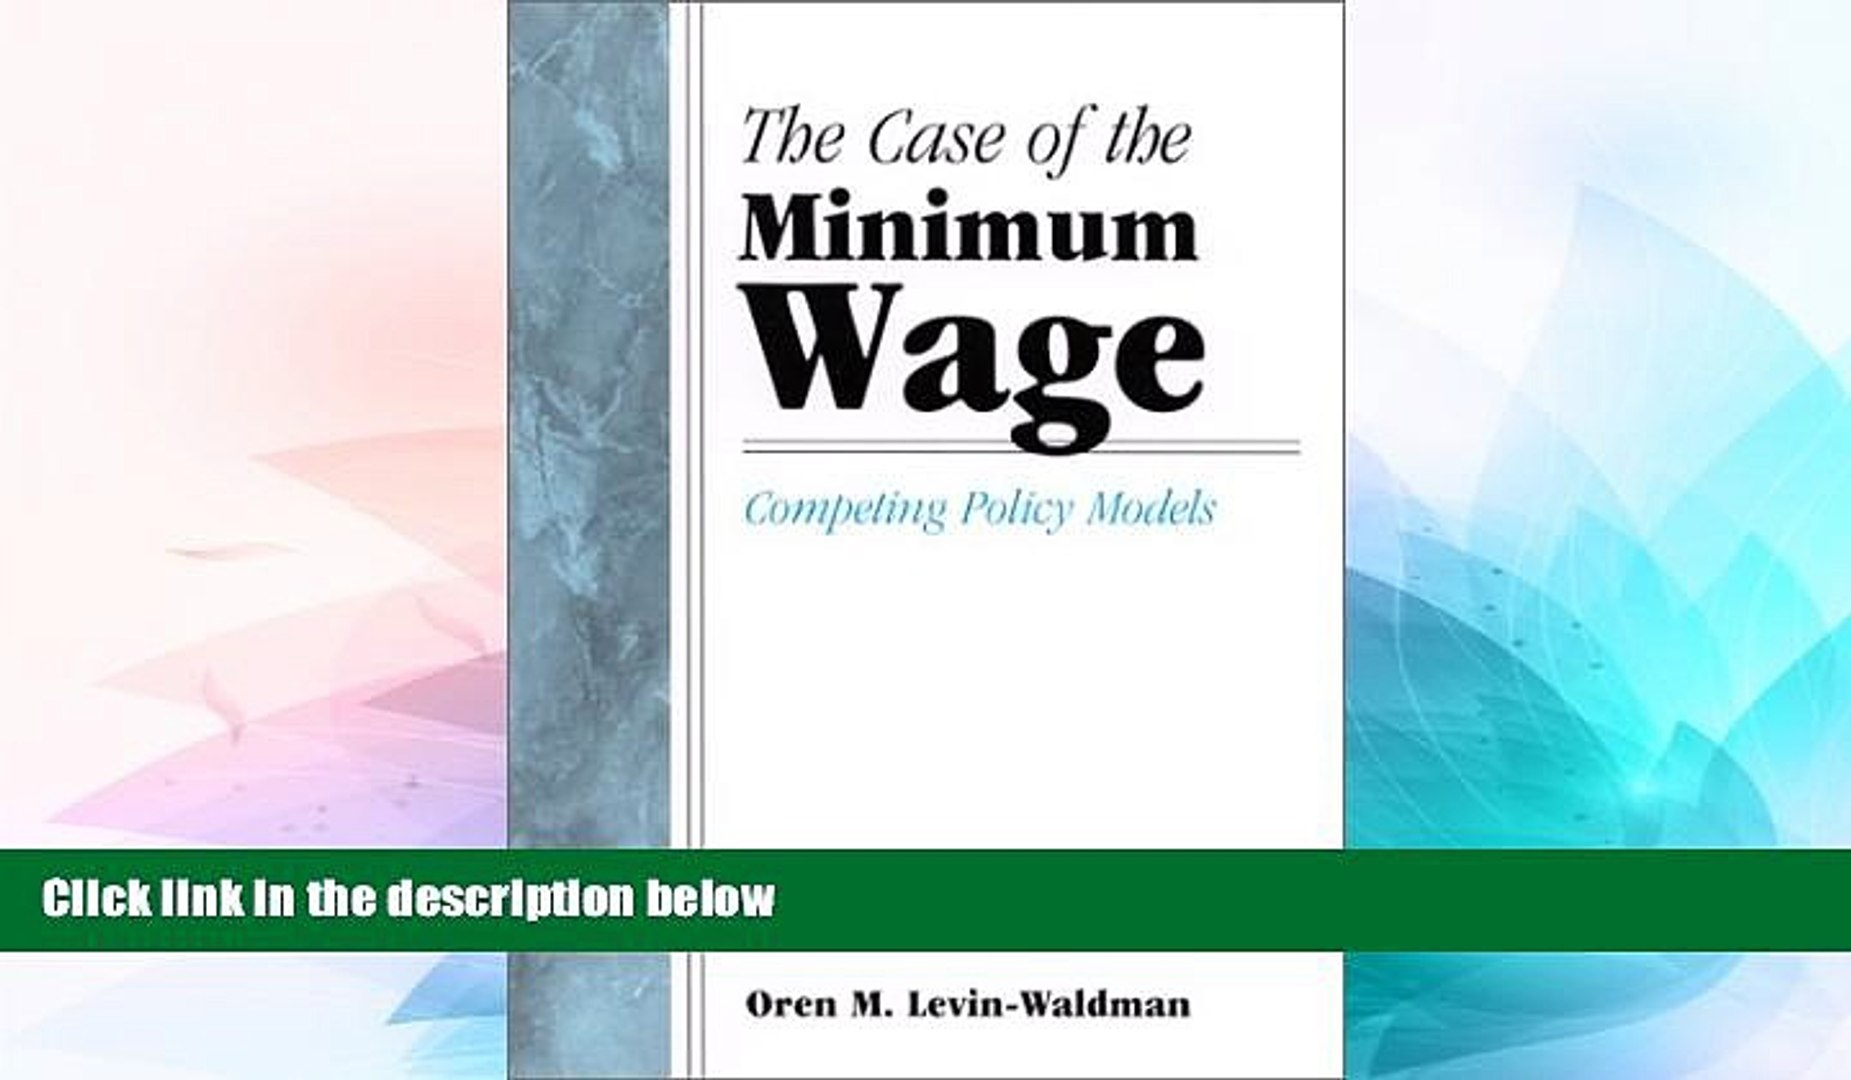 READ FULL  Case of the Minimum Wage the: Competing Policy Models (Suny Series, Public Policy)